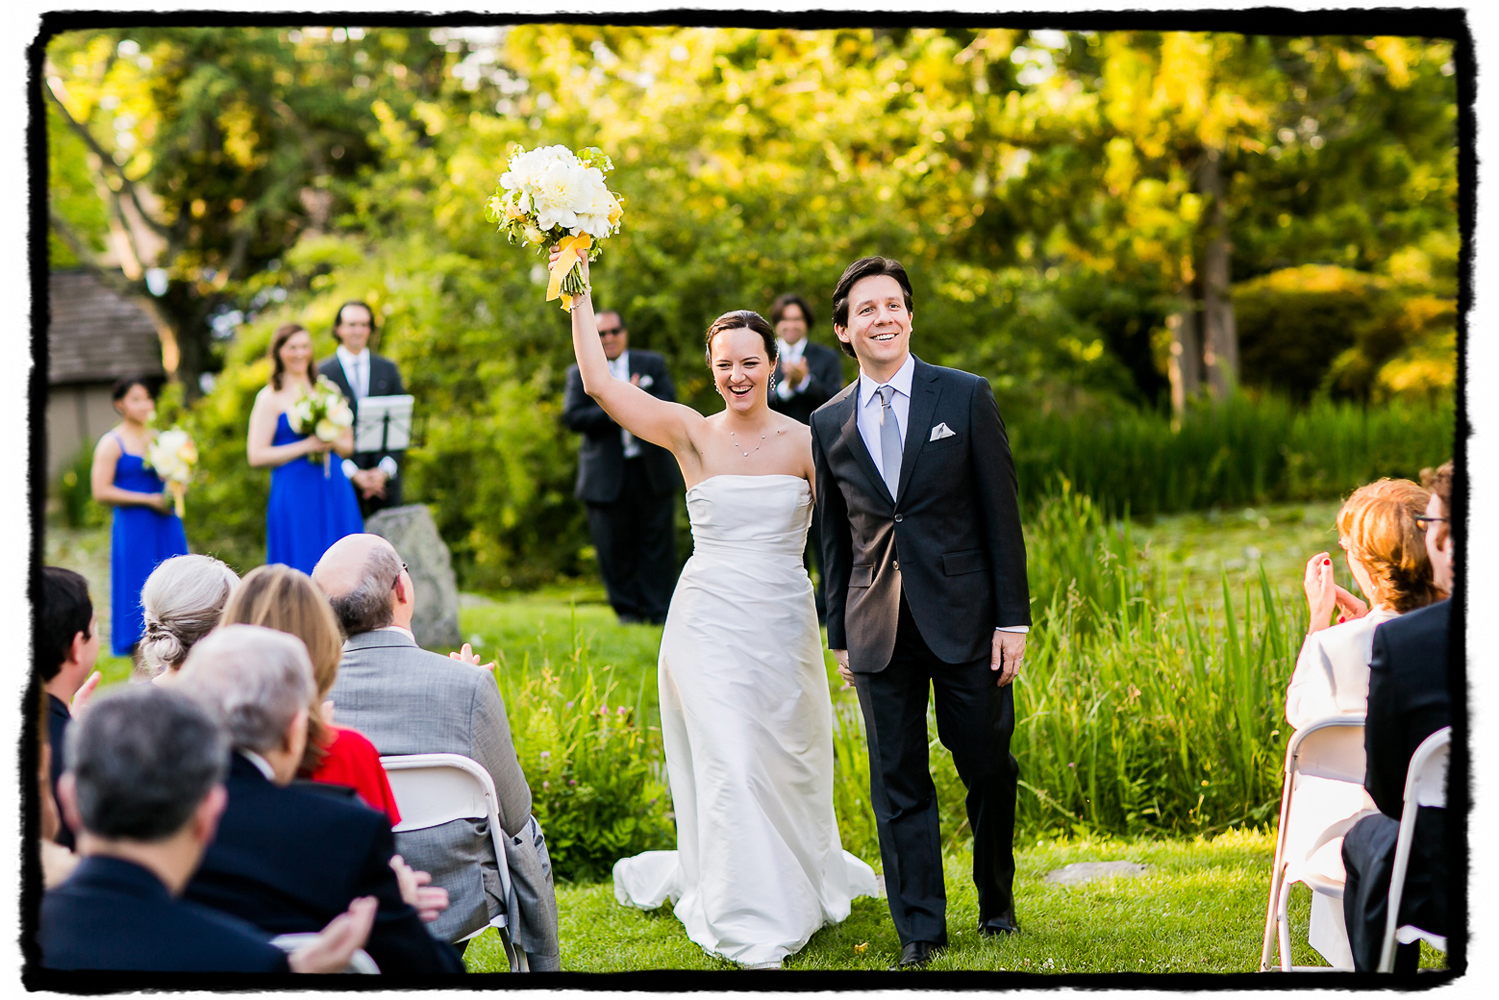 Laura & Axuve tied the knot at The Hammond Museum and Japanese Stroll Garden.